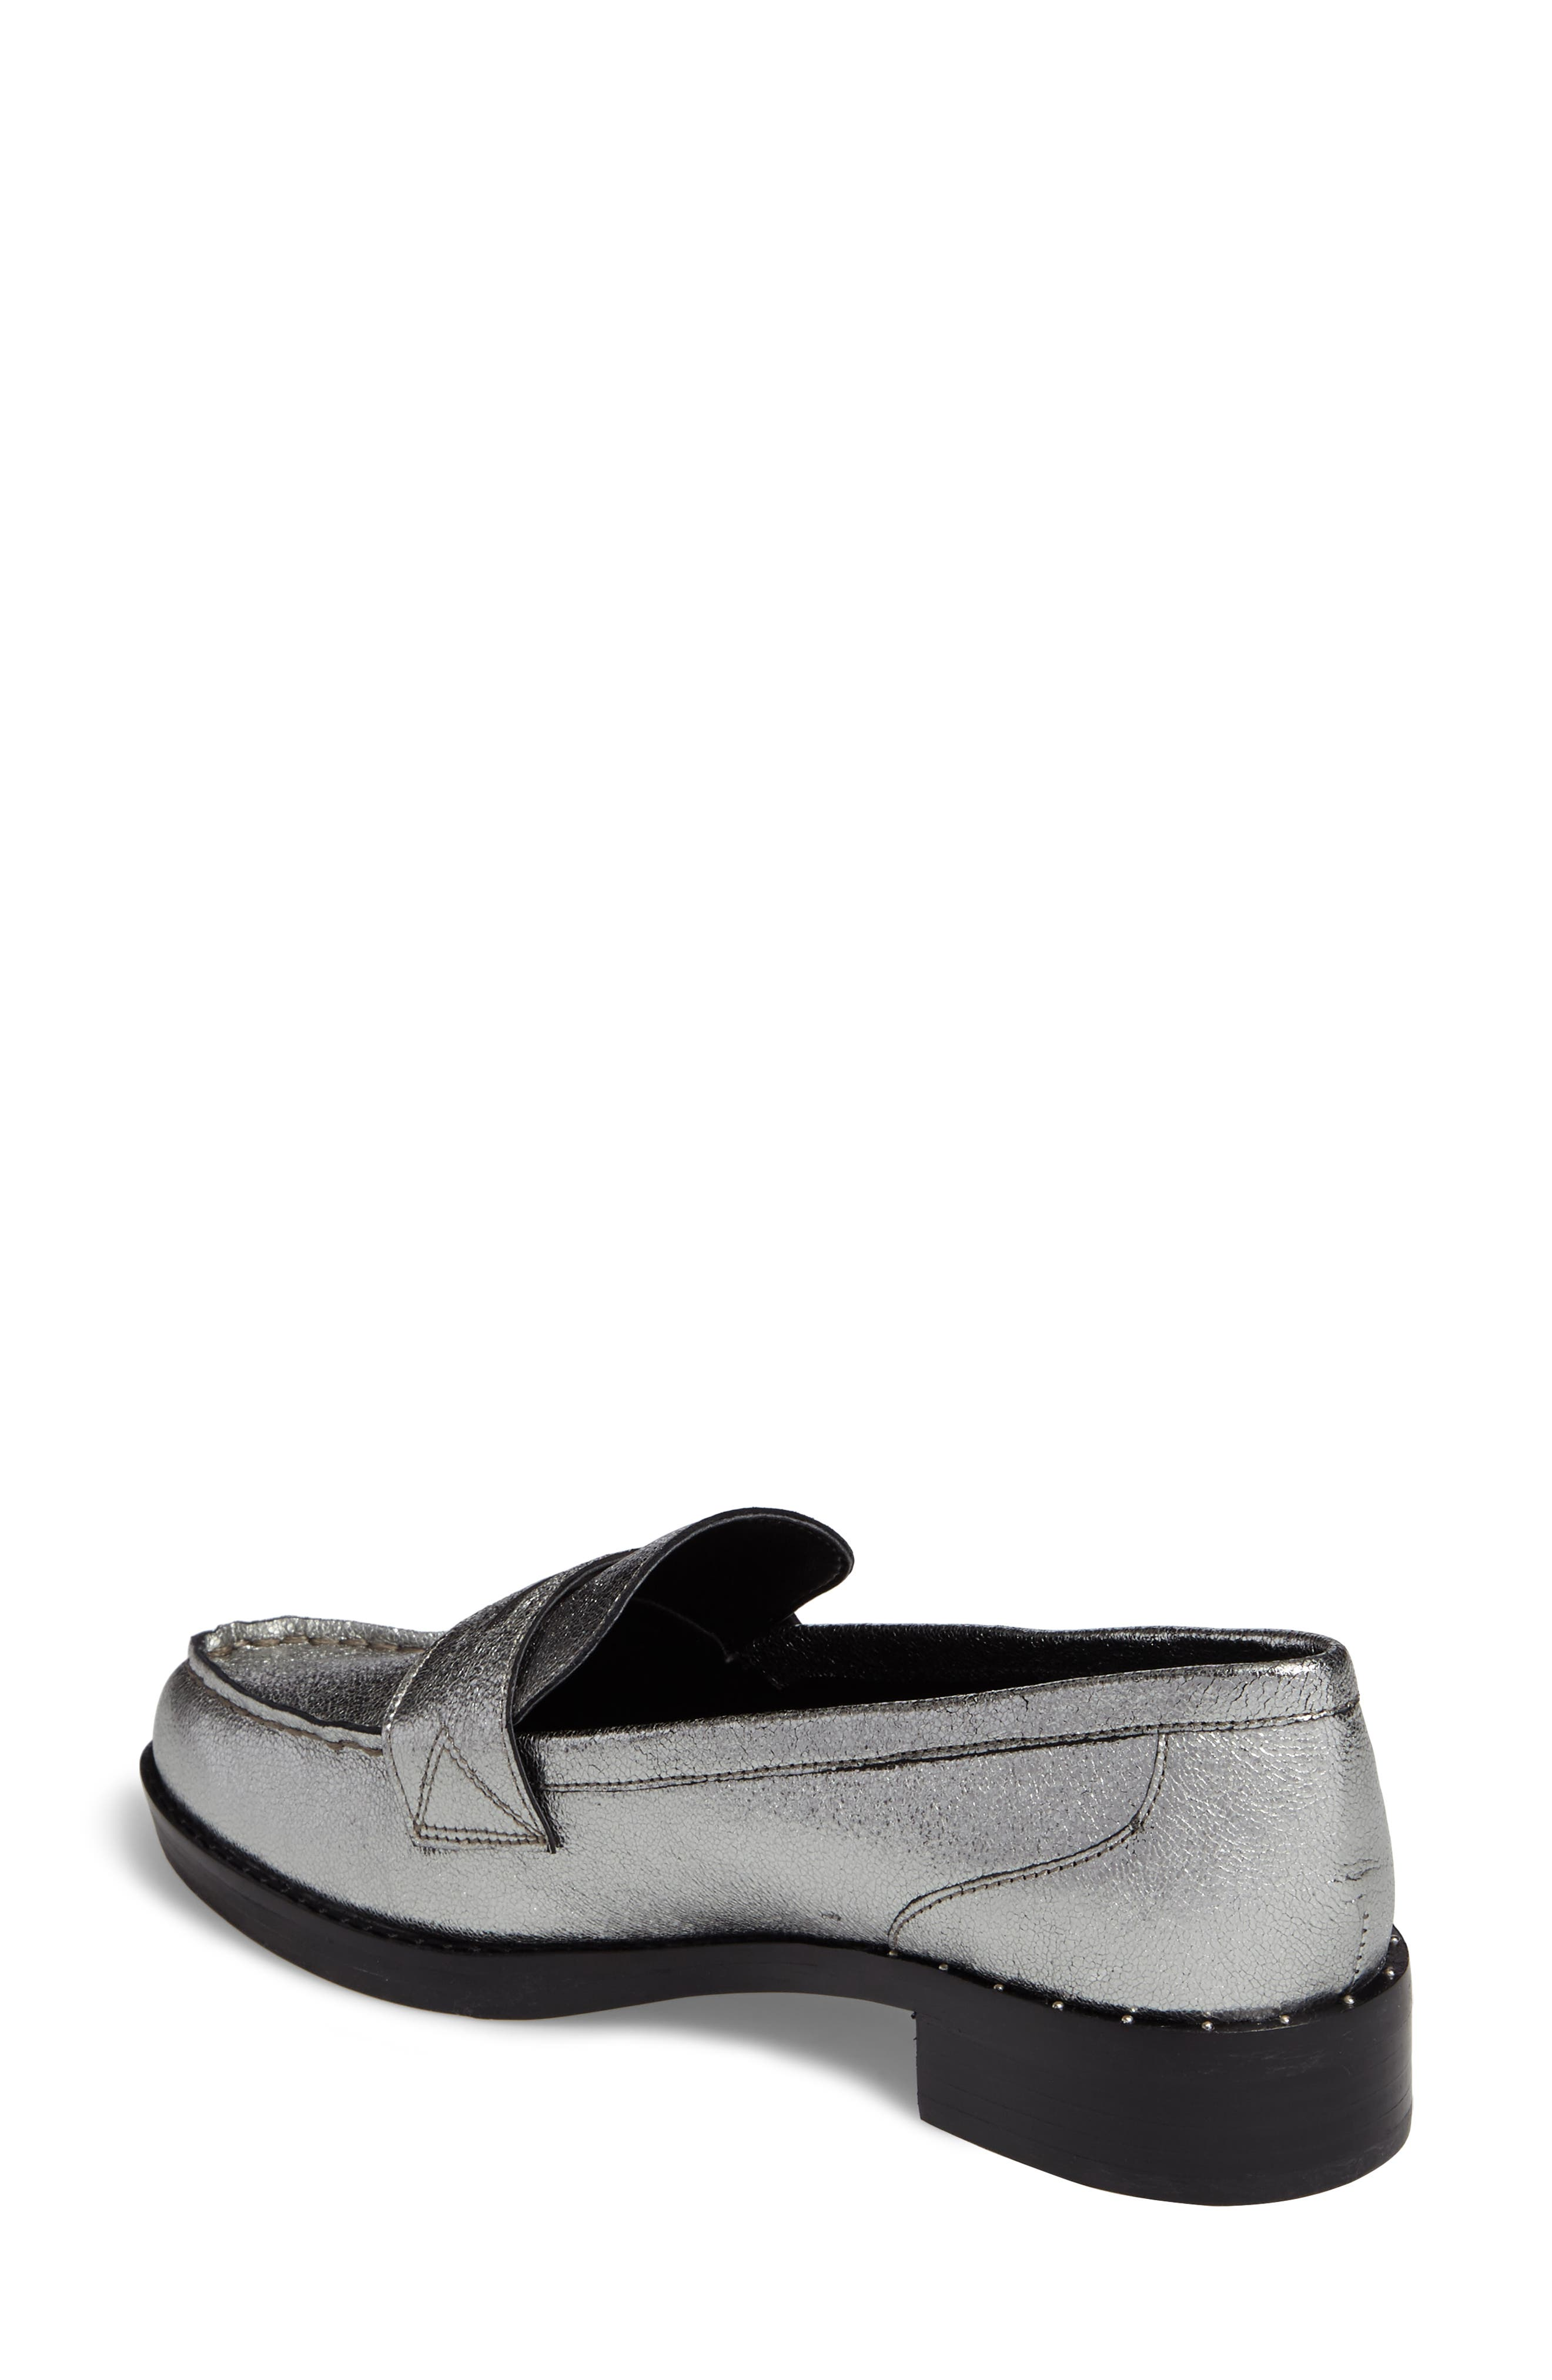 Vero Penny Loafer,                             Alternate thumbnail 2, color,                             Pewter Leather